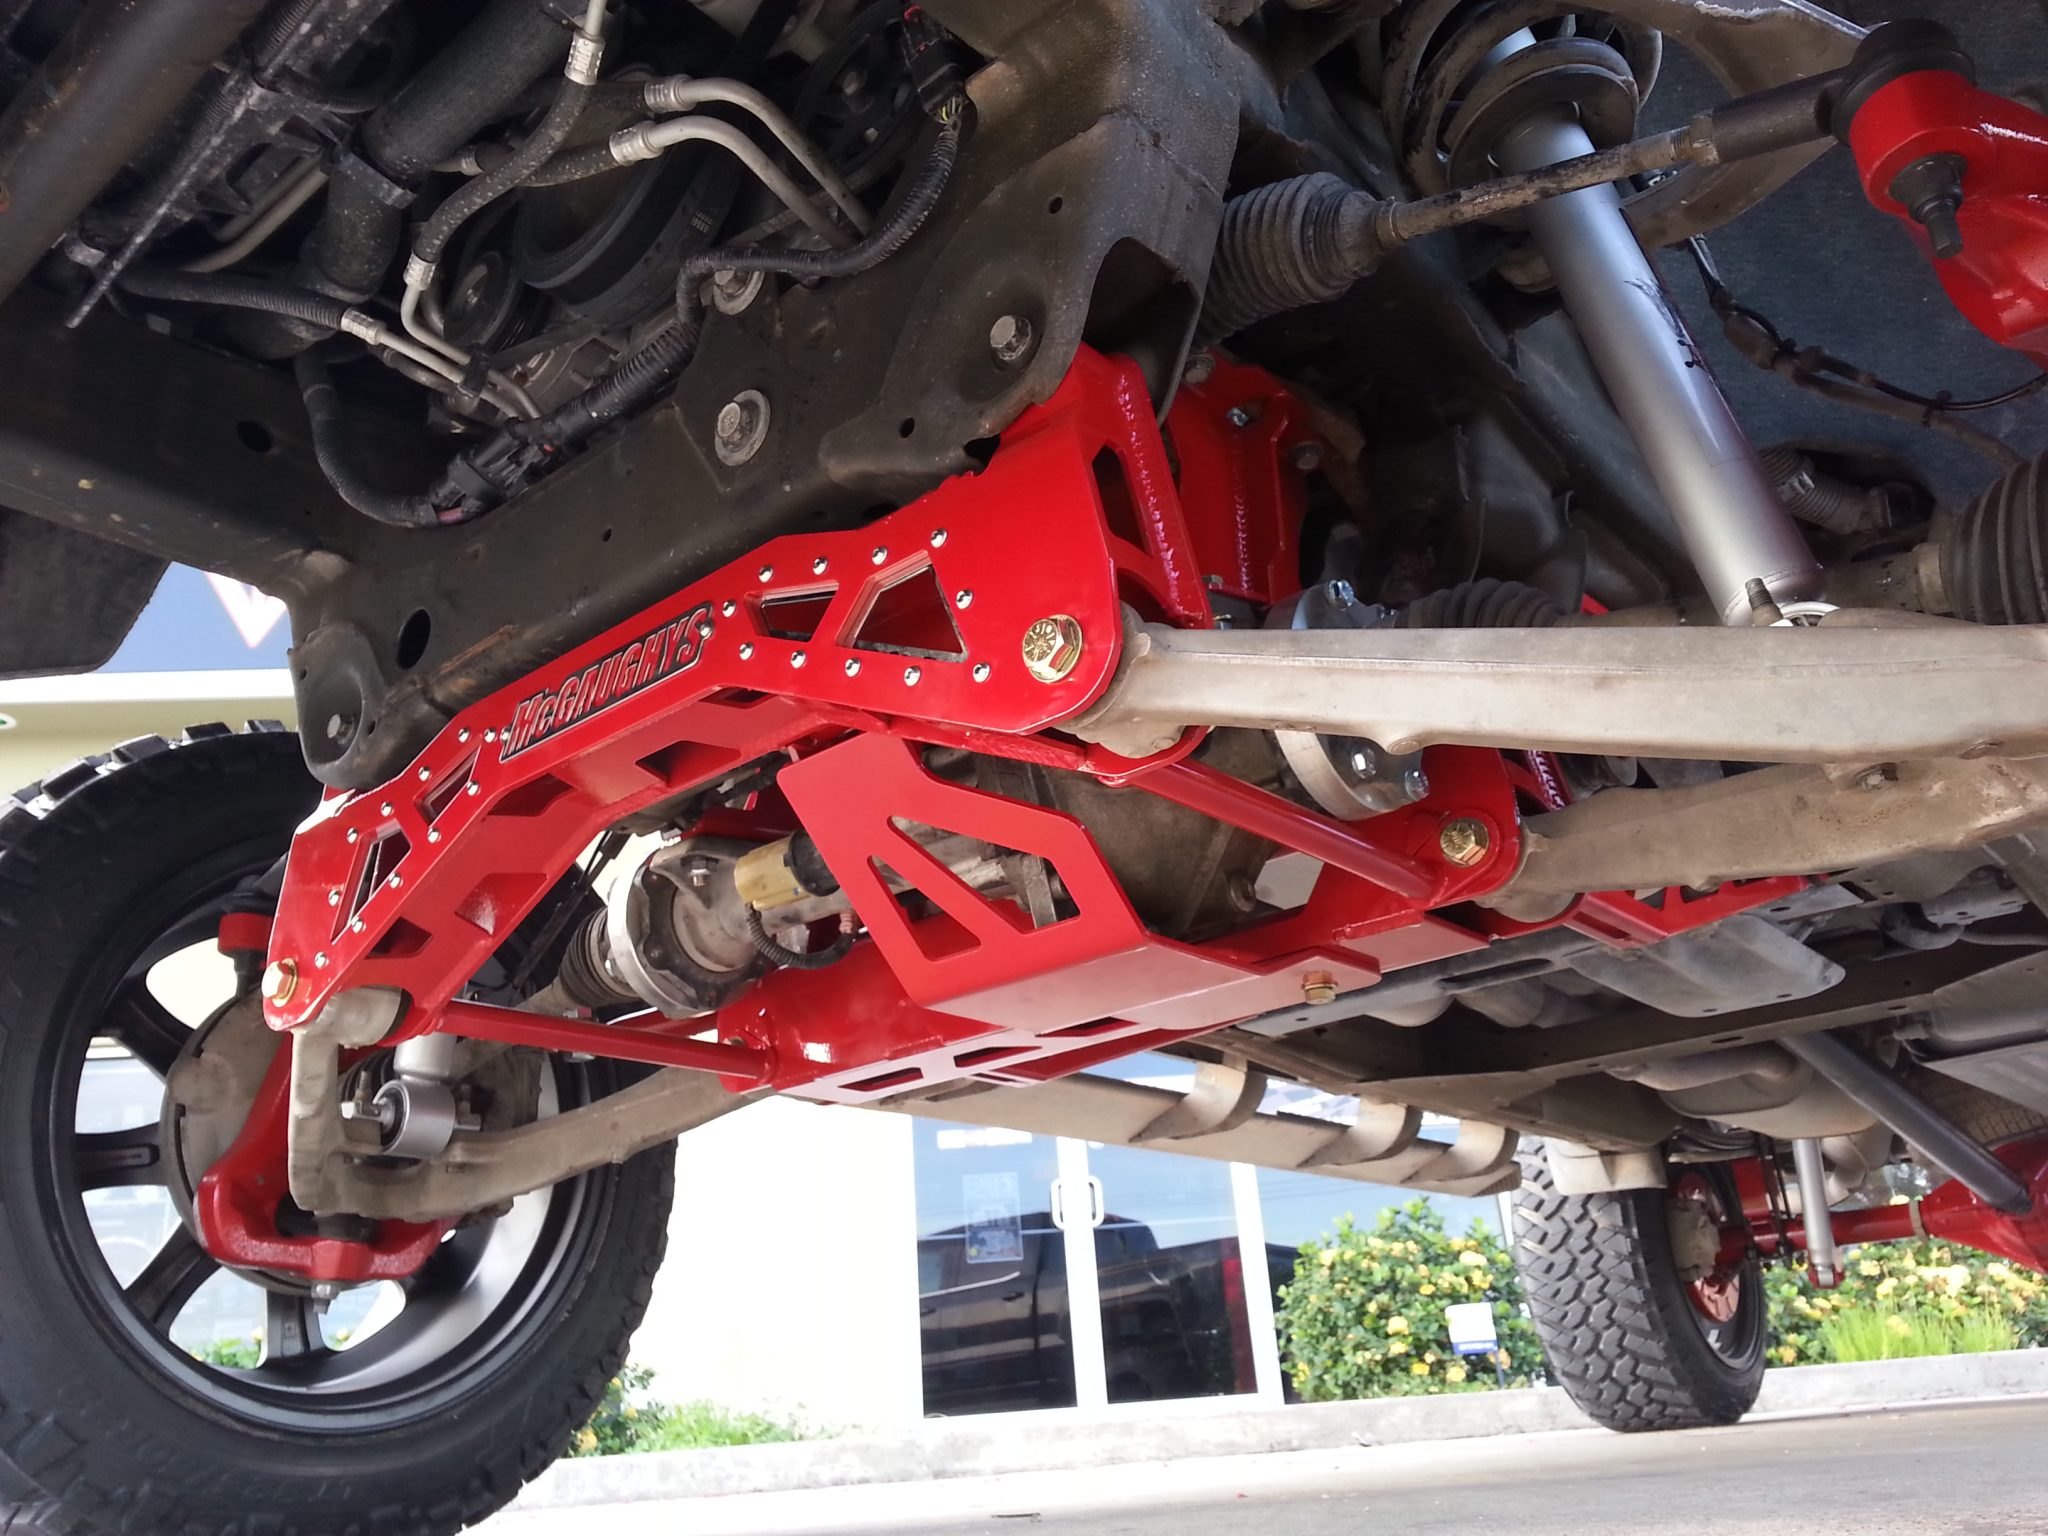 McGaughys Suspension Lift, painted Red